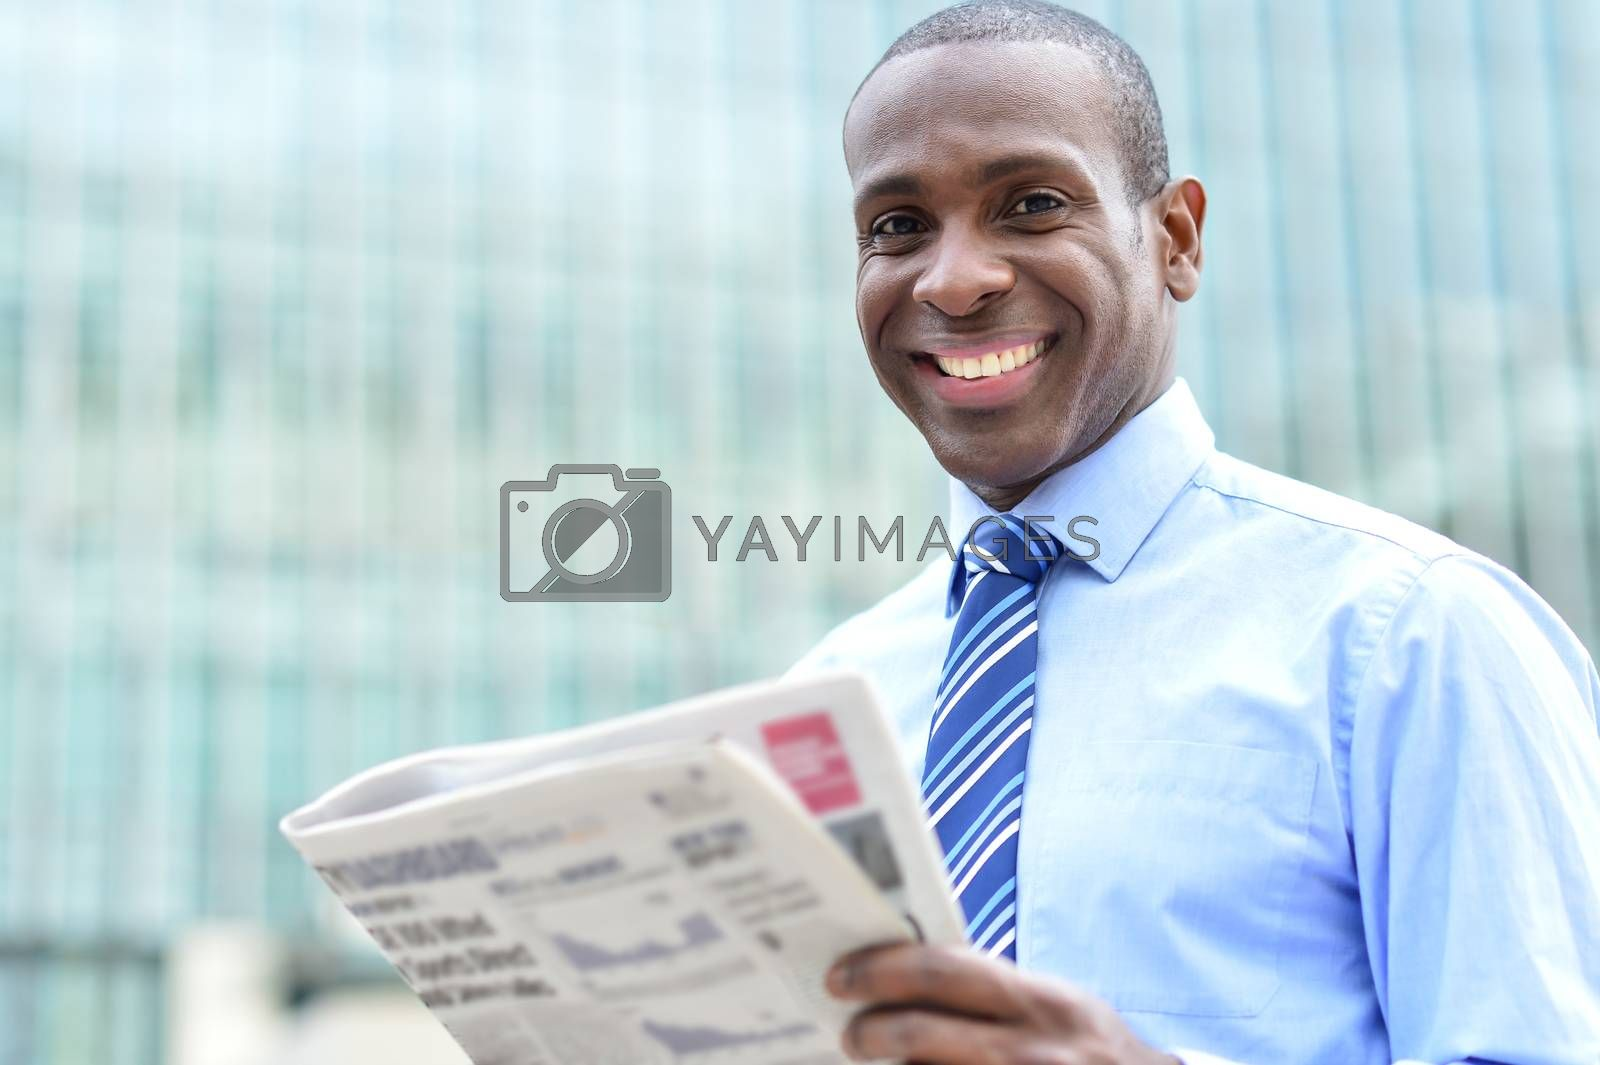 Corporate male smiling with magazine at outdoors